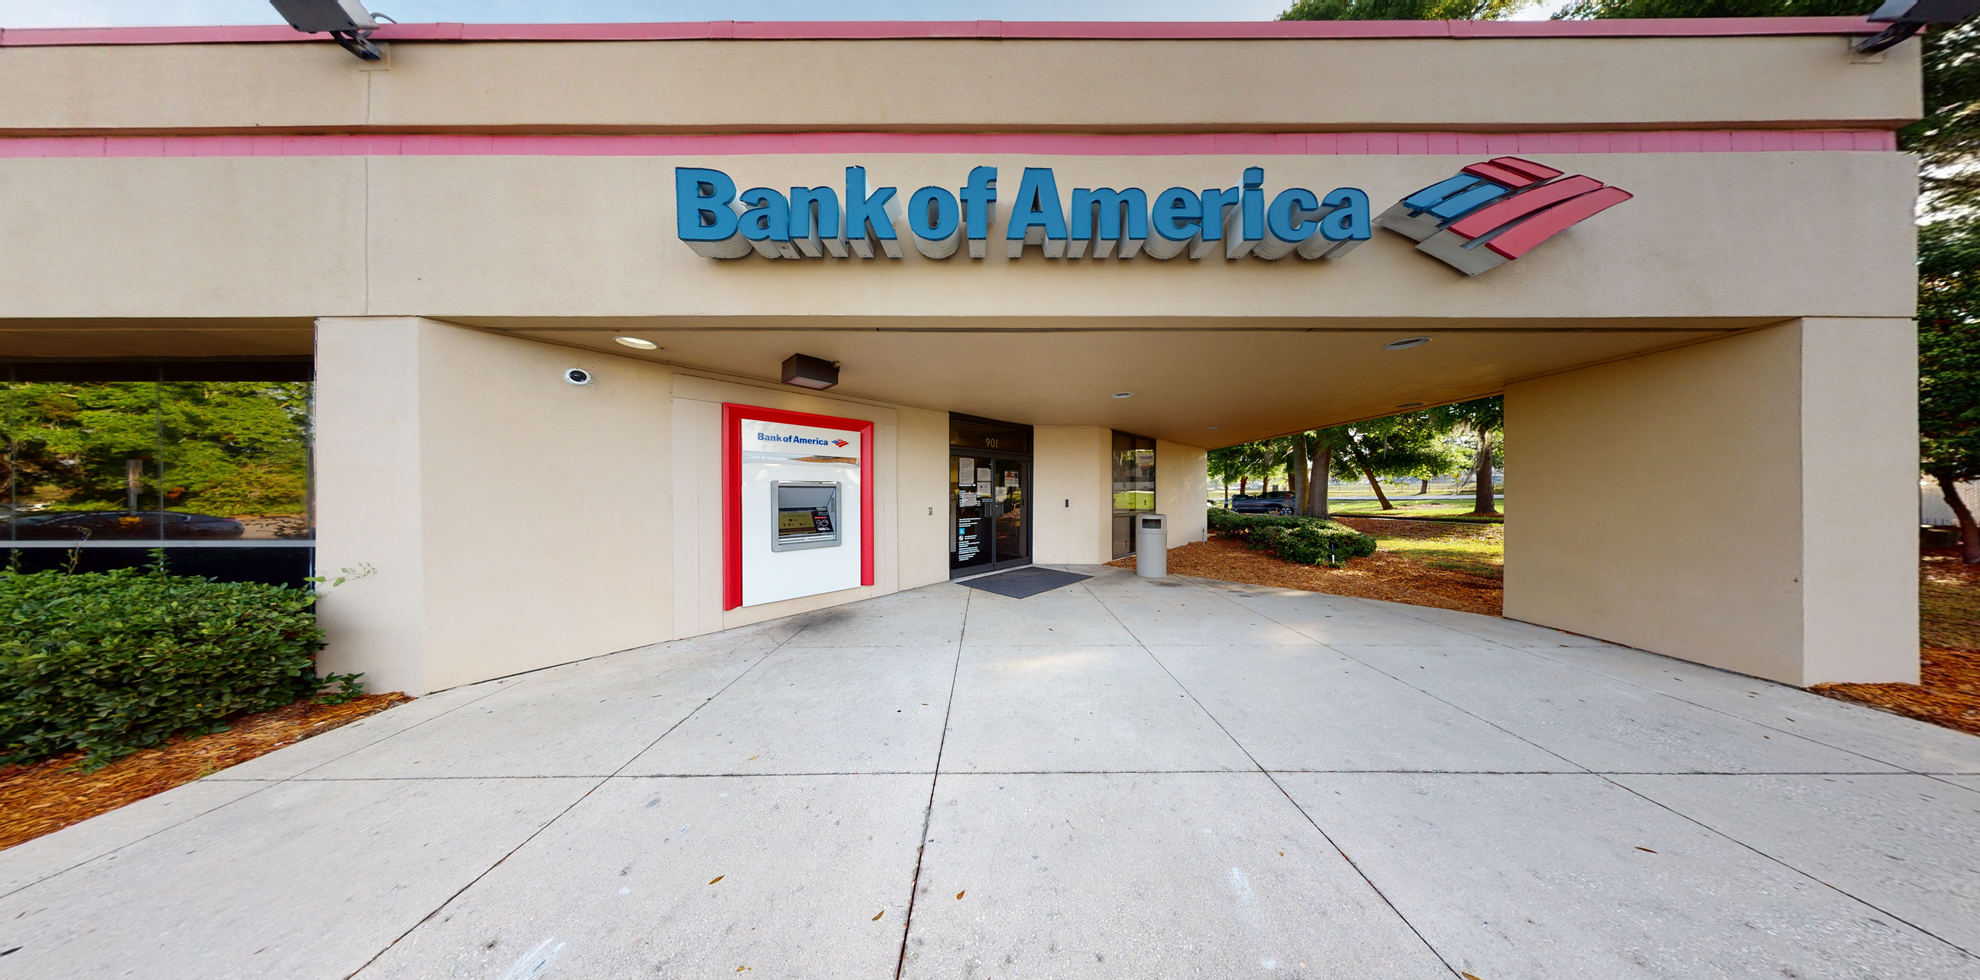 Bank of America financial center with drive-thru ATM and teller   901 N US Highway 27, Lady Lake, FL 32159